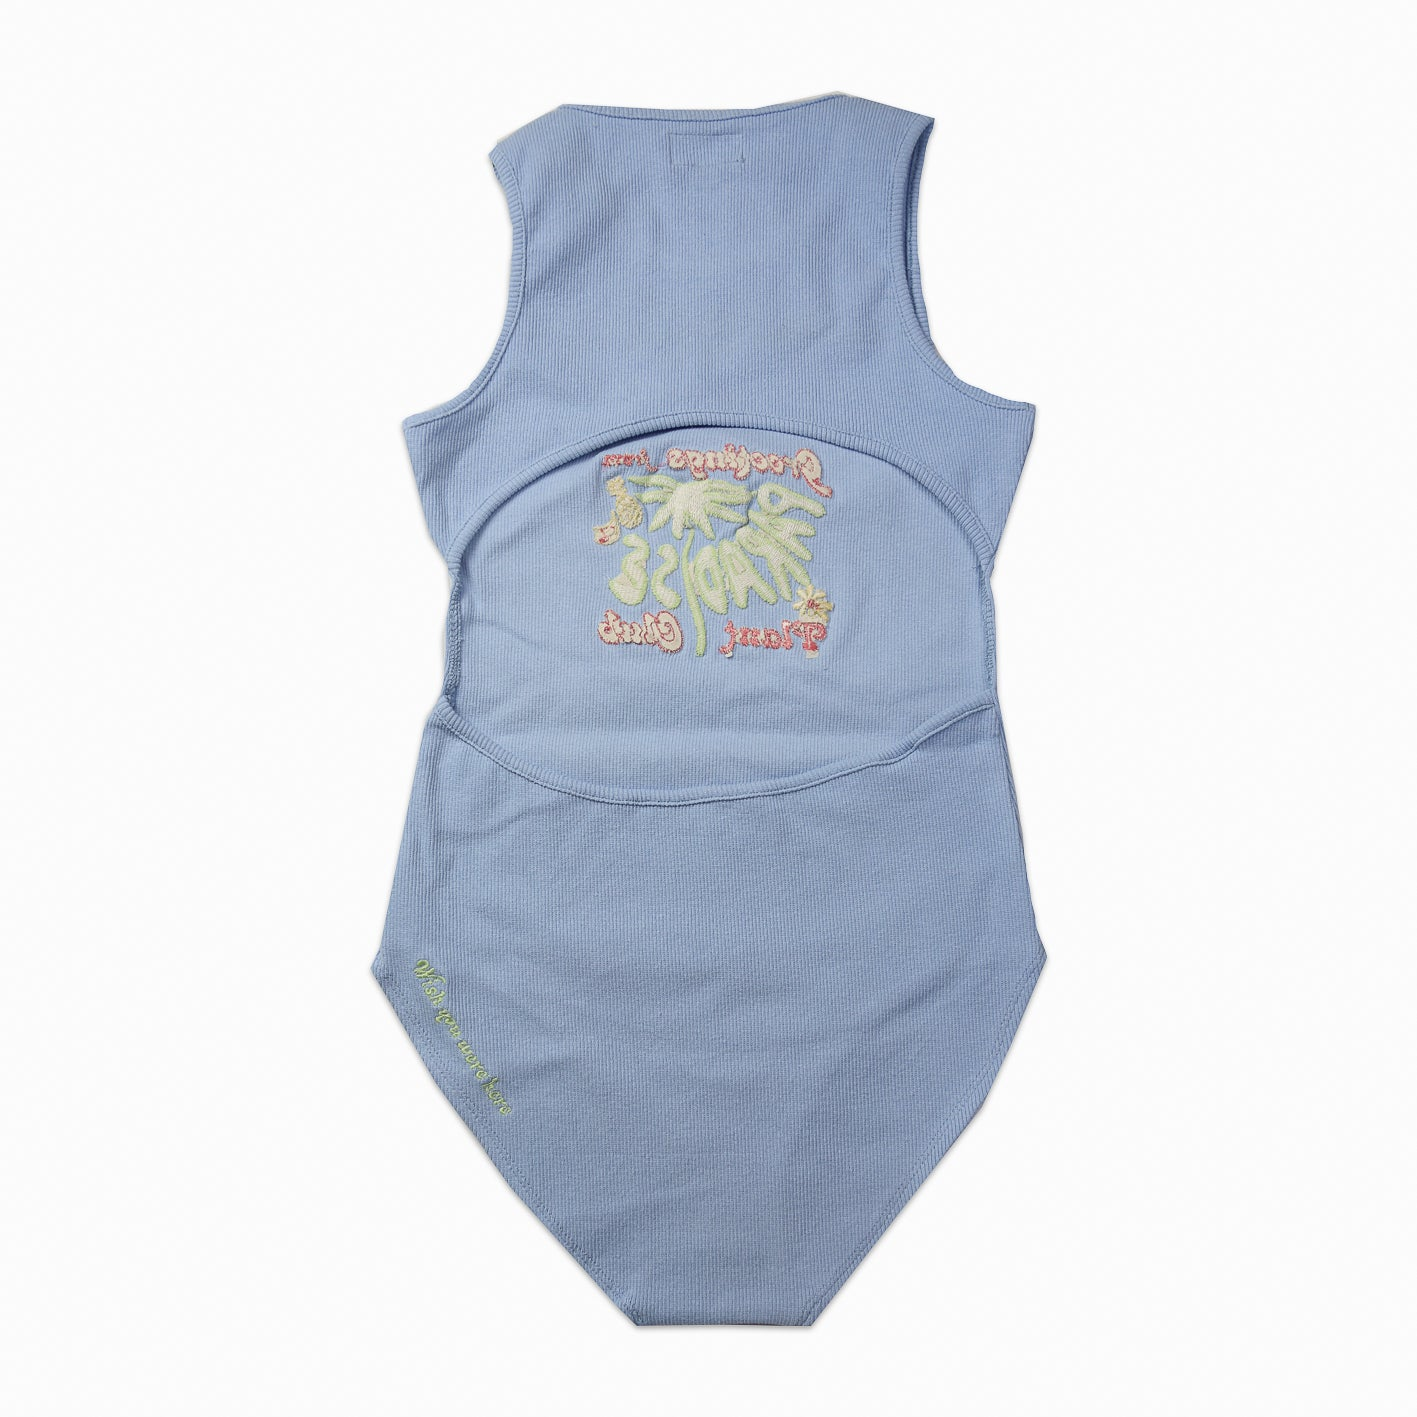 Vol.3 Souvenir Bodysuit - Blue